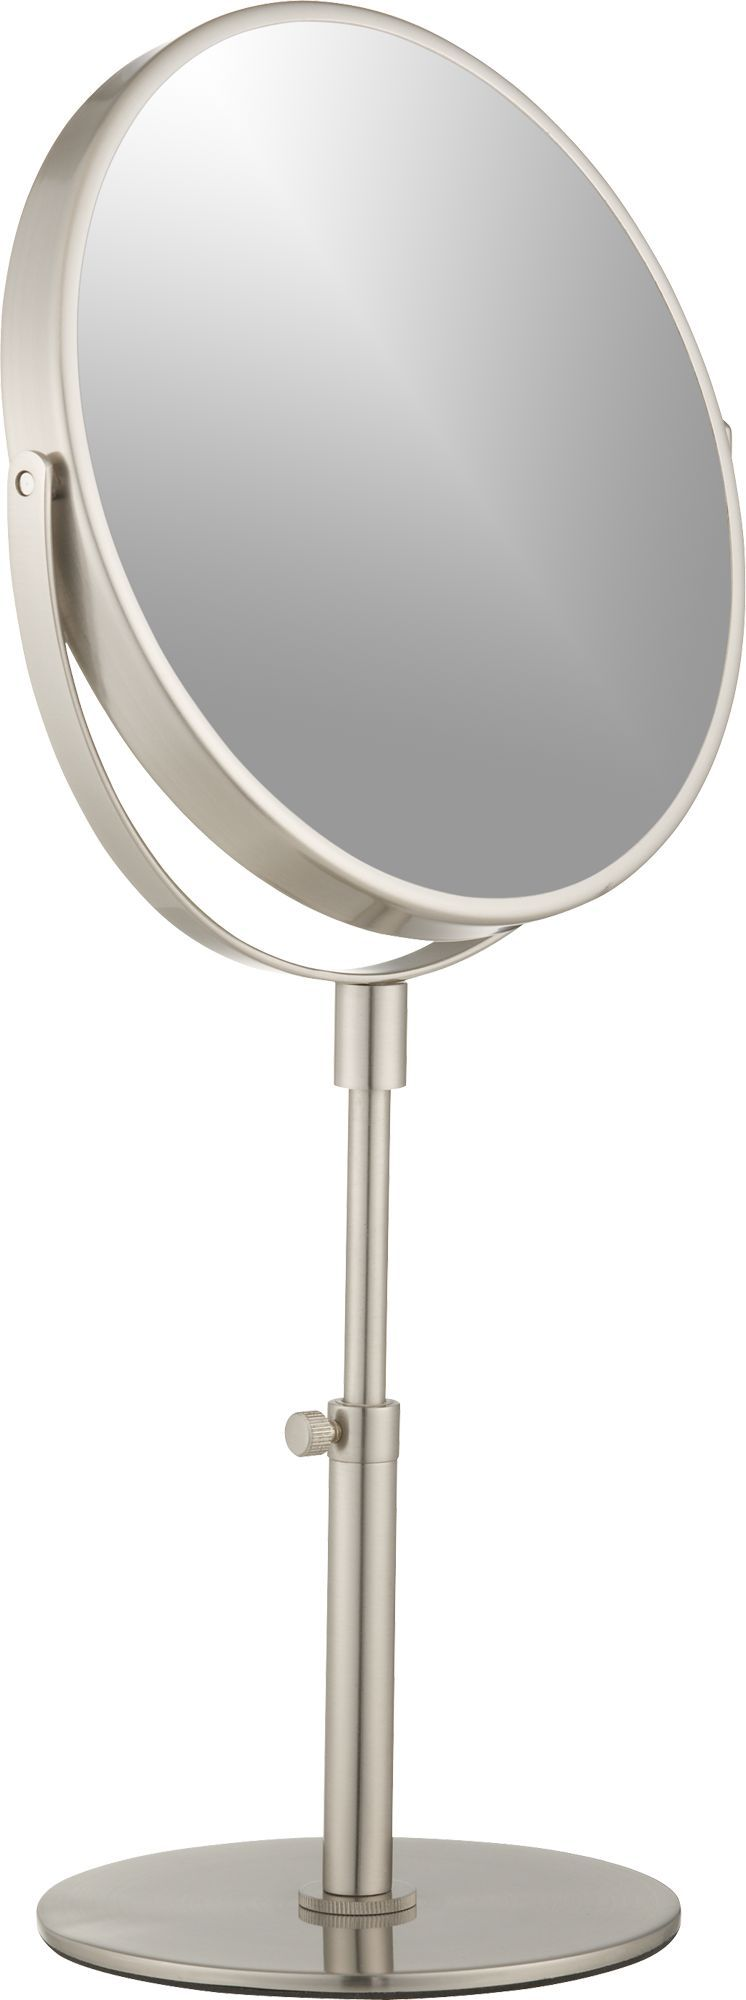 Round vanity mirror flips to two magnifications to get an up-close ...